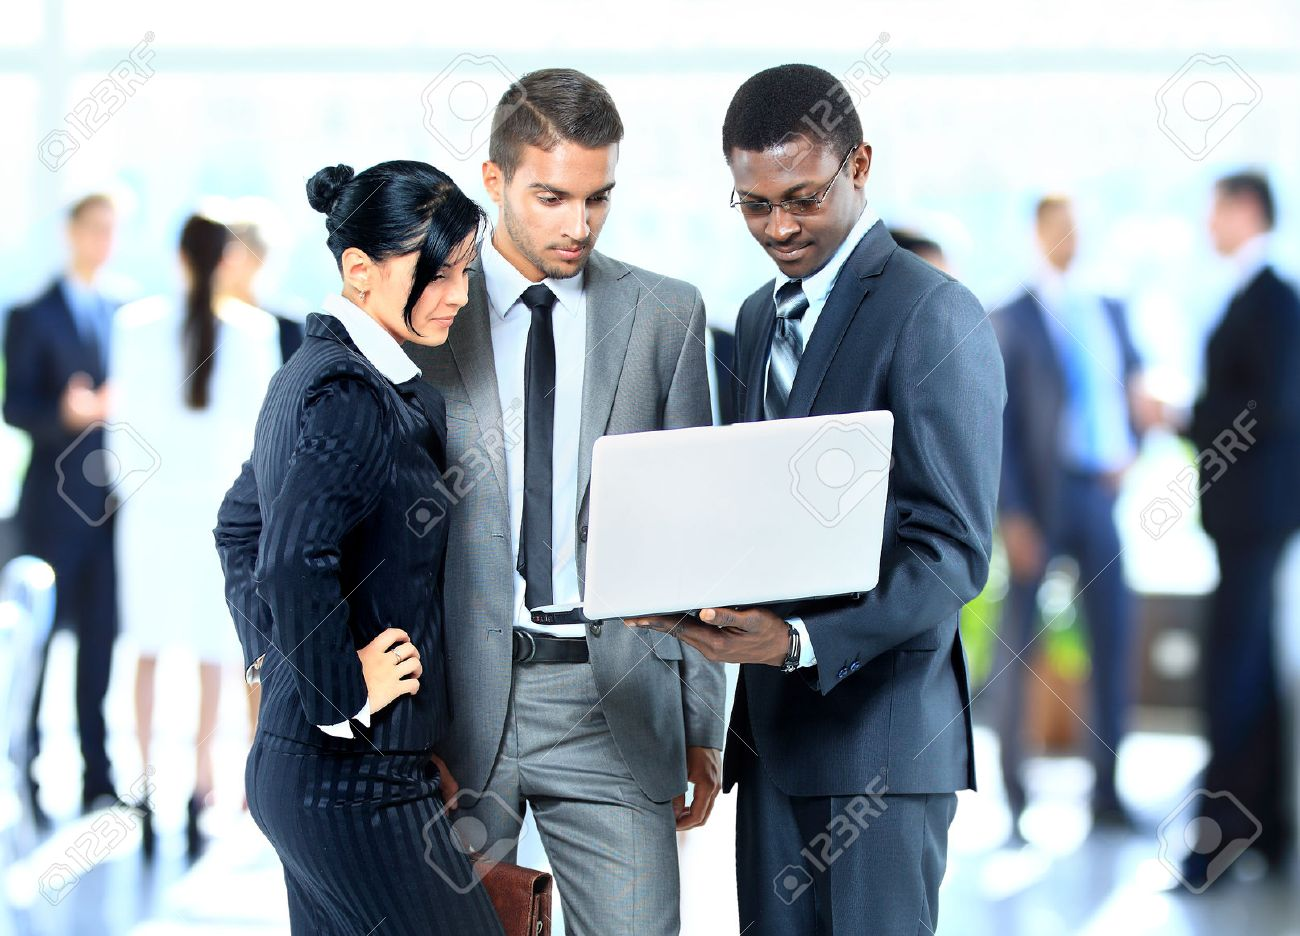 Successful business people working together Stock Photo - 22400344